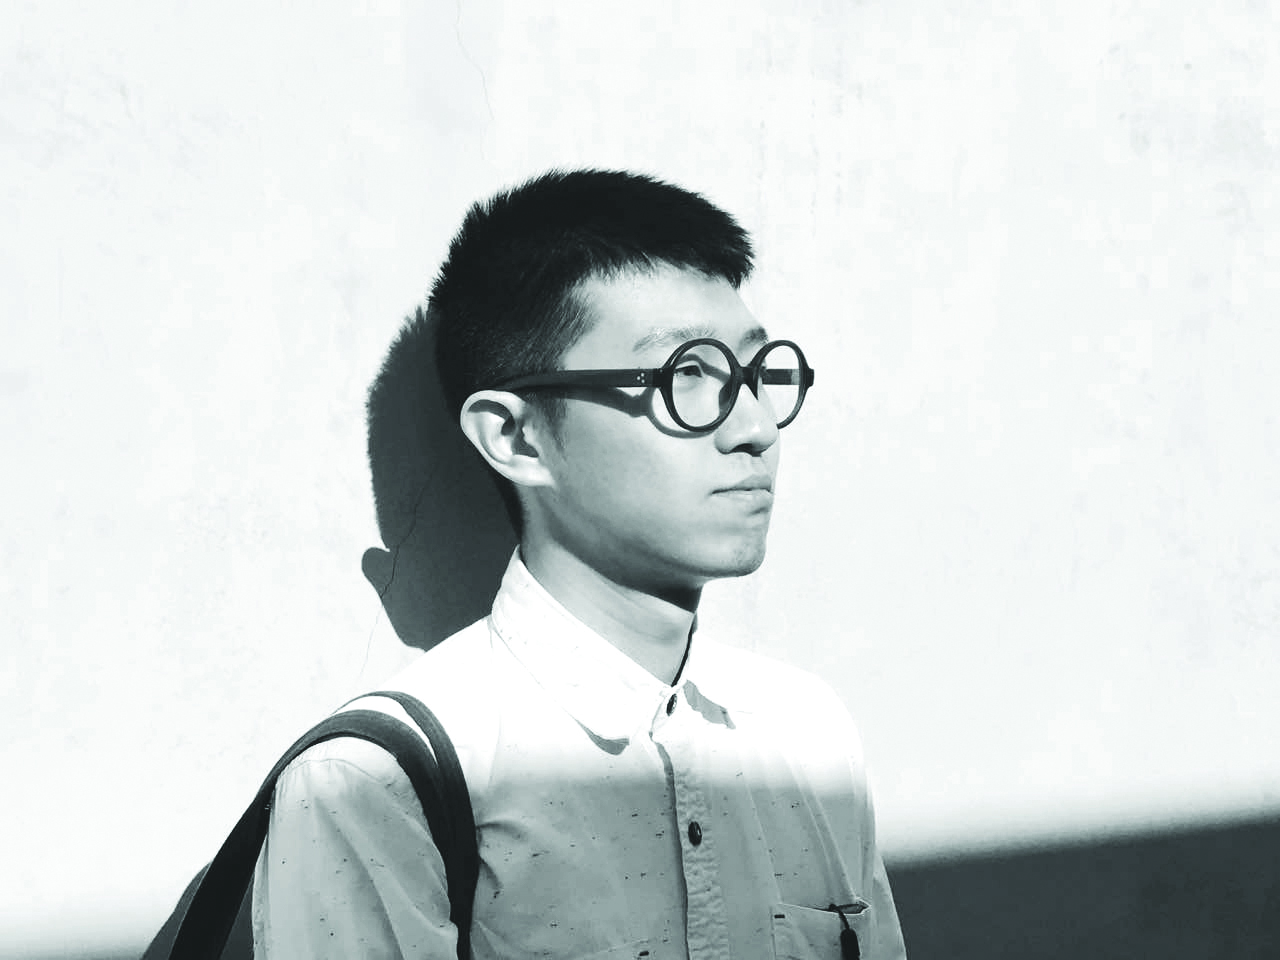 Man in circle rimmed glasses stands up against a wall and looks off into the distance